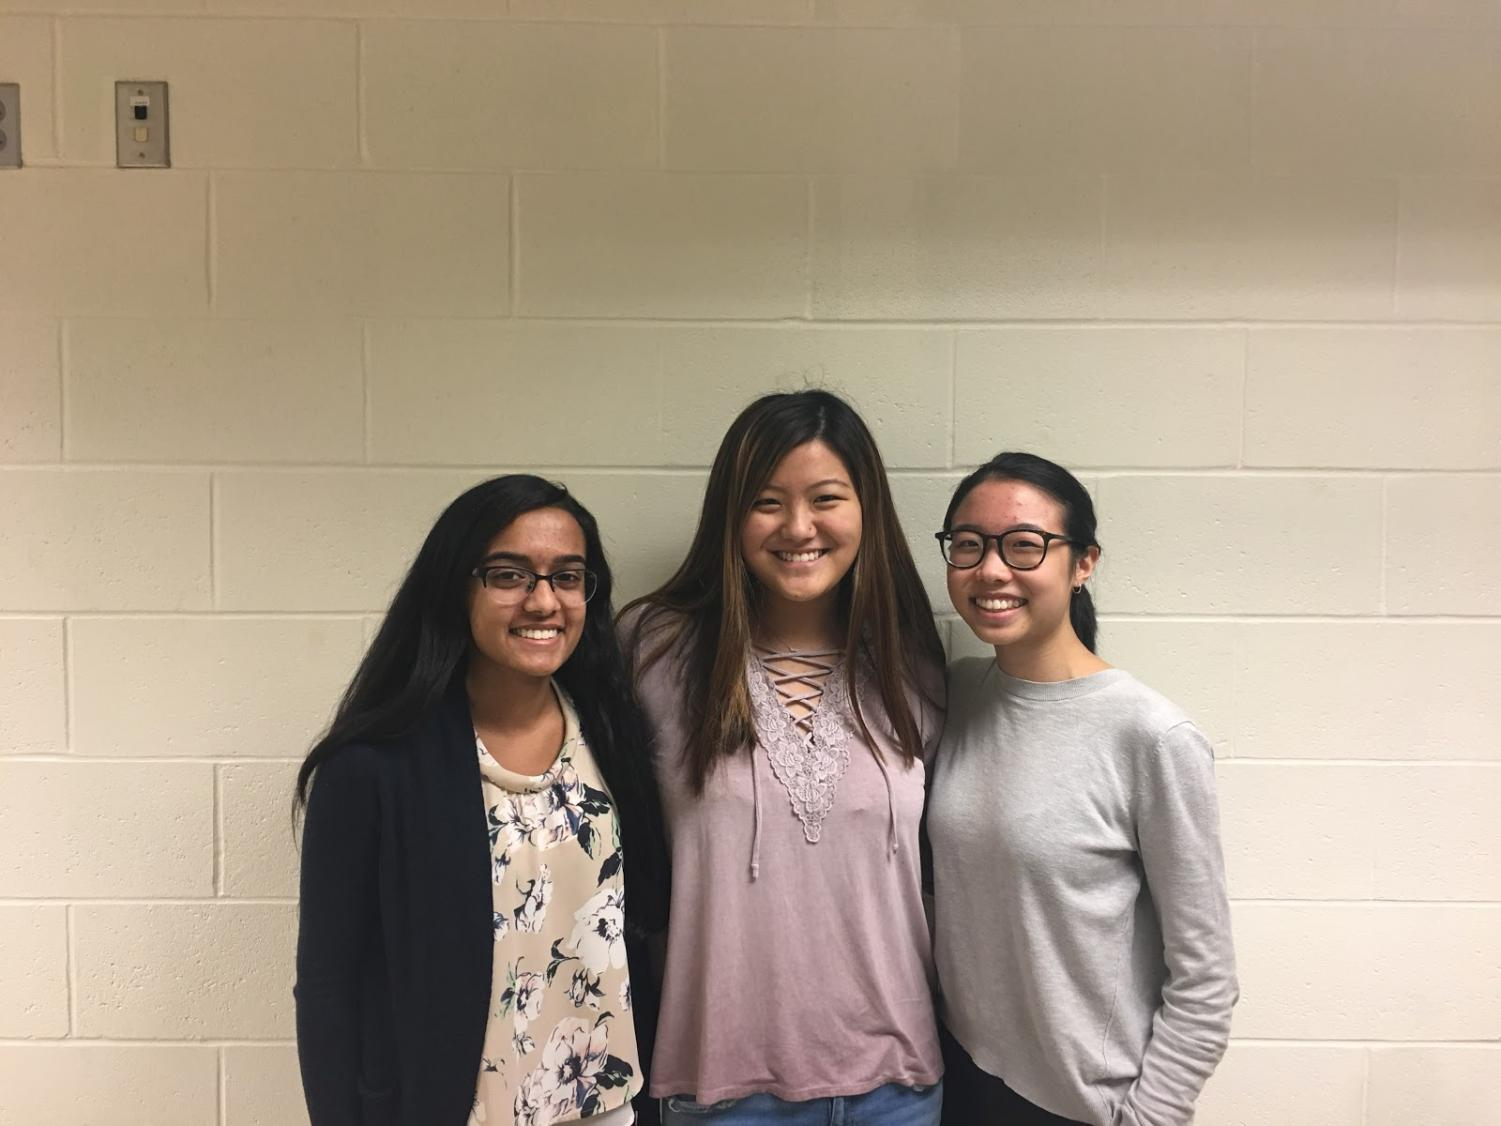 Senior presidents Jyothi Polackcal [left], Claire Duffy [middle] and Clarissa Wong [right] share their thoughts on the goal of HOSA and answer other questions regarding the club.